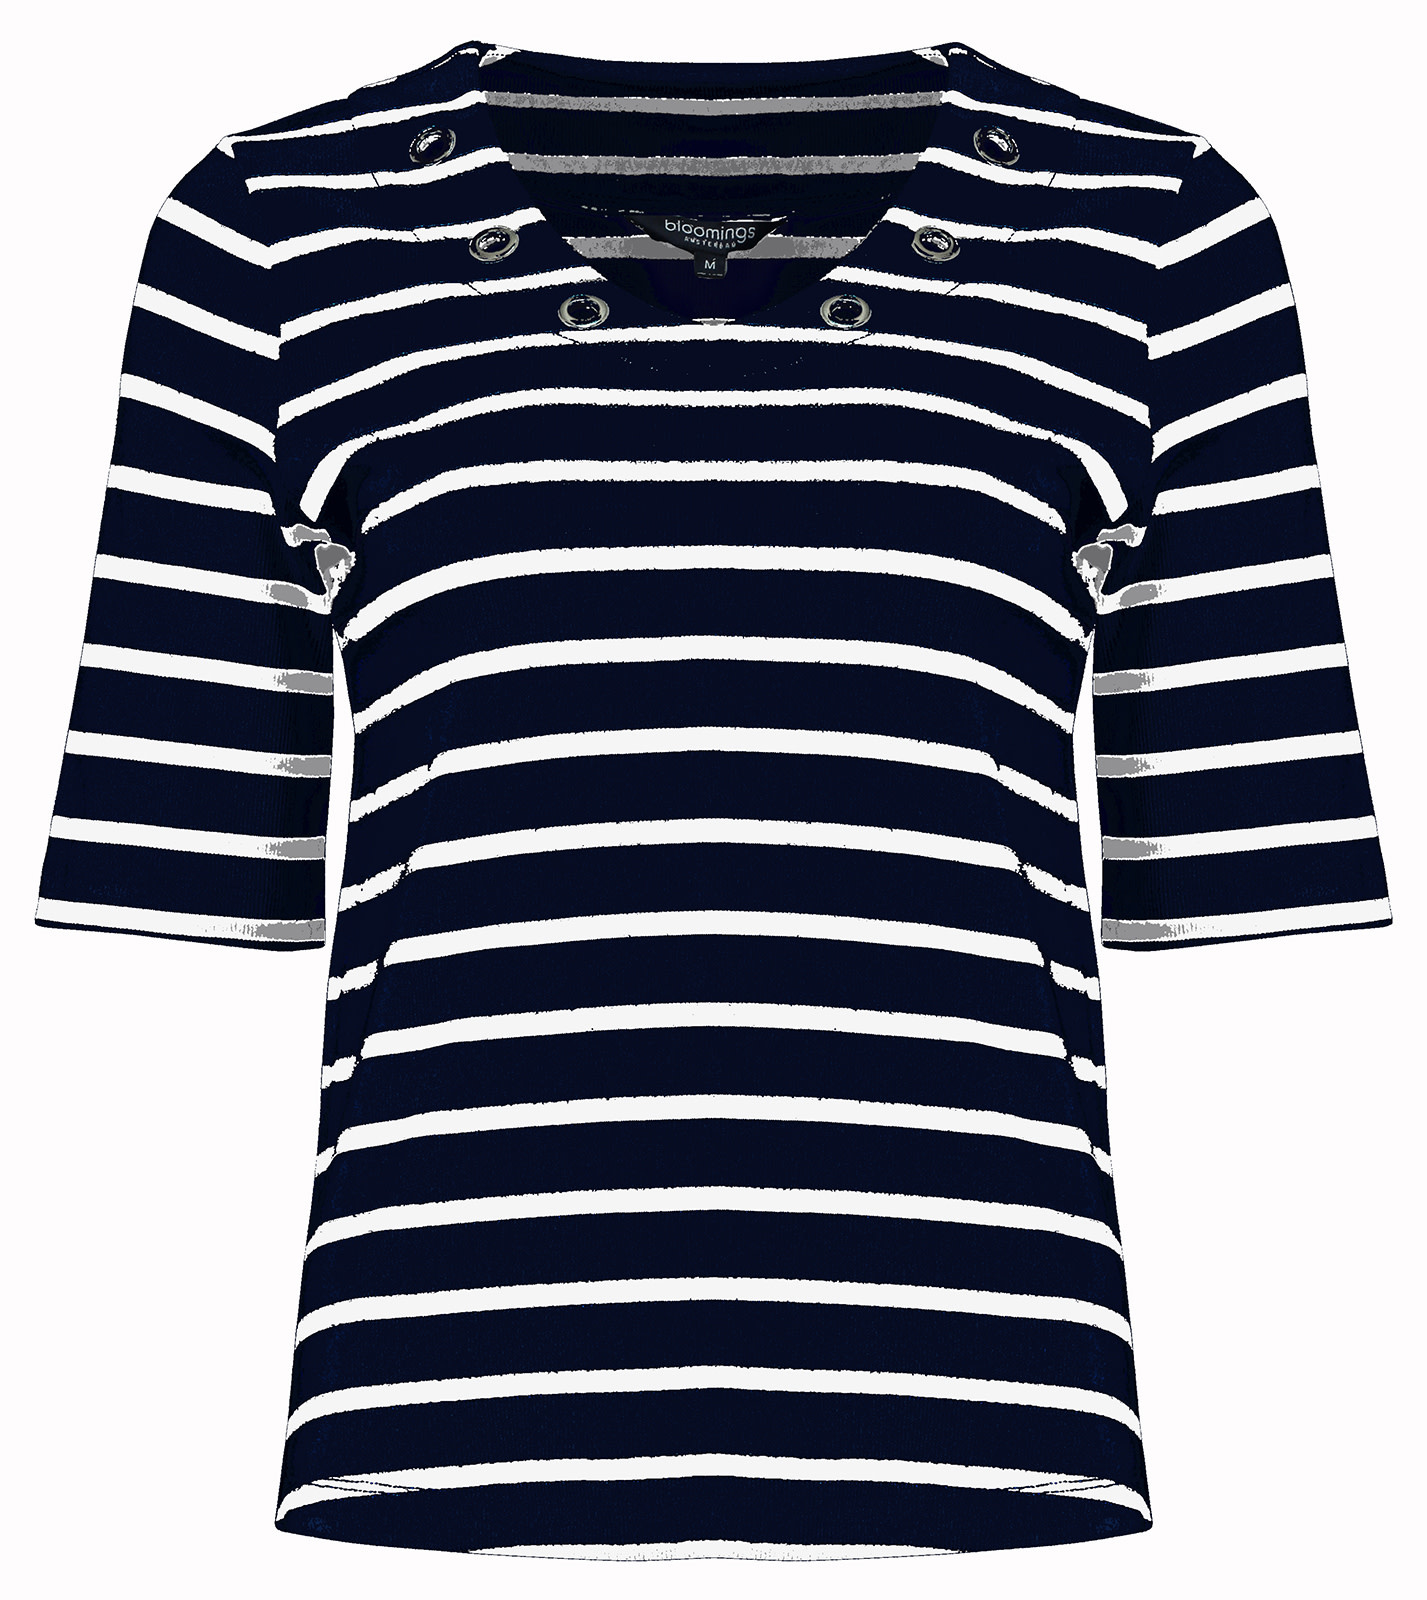 Navy Striped Shirt with Grommets